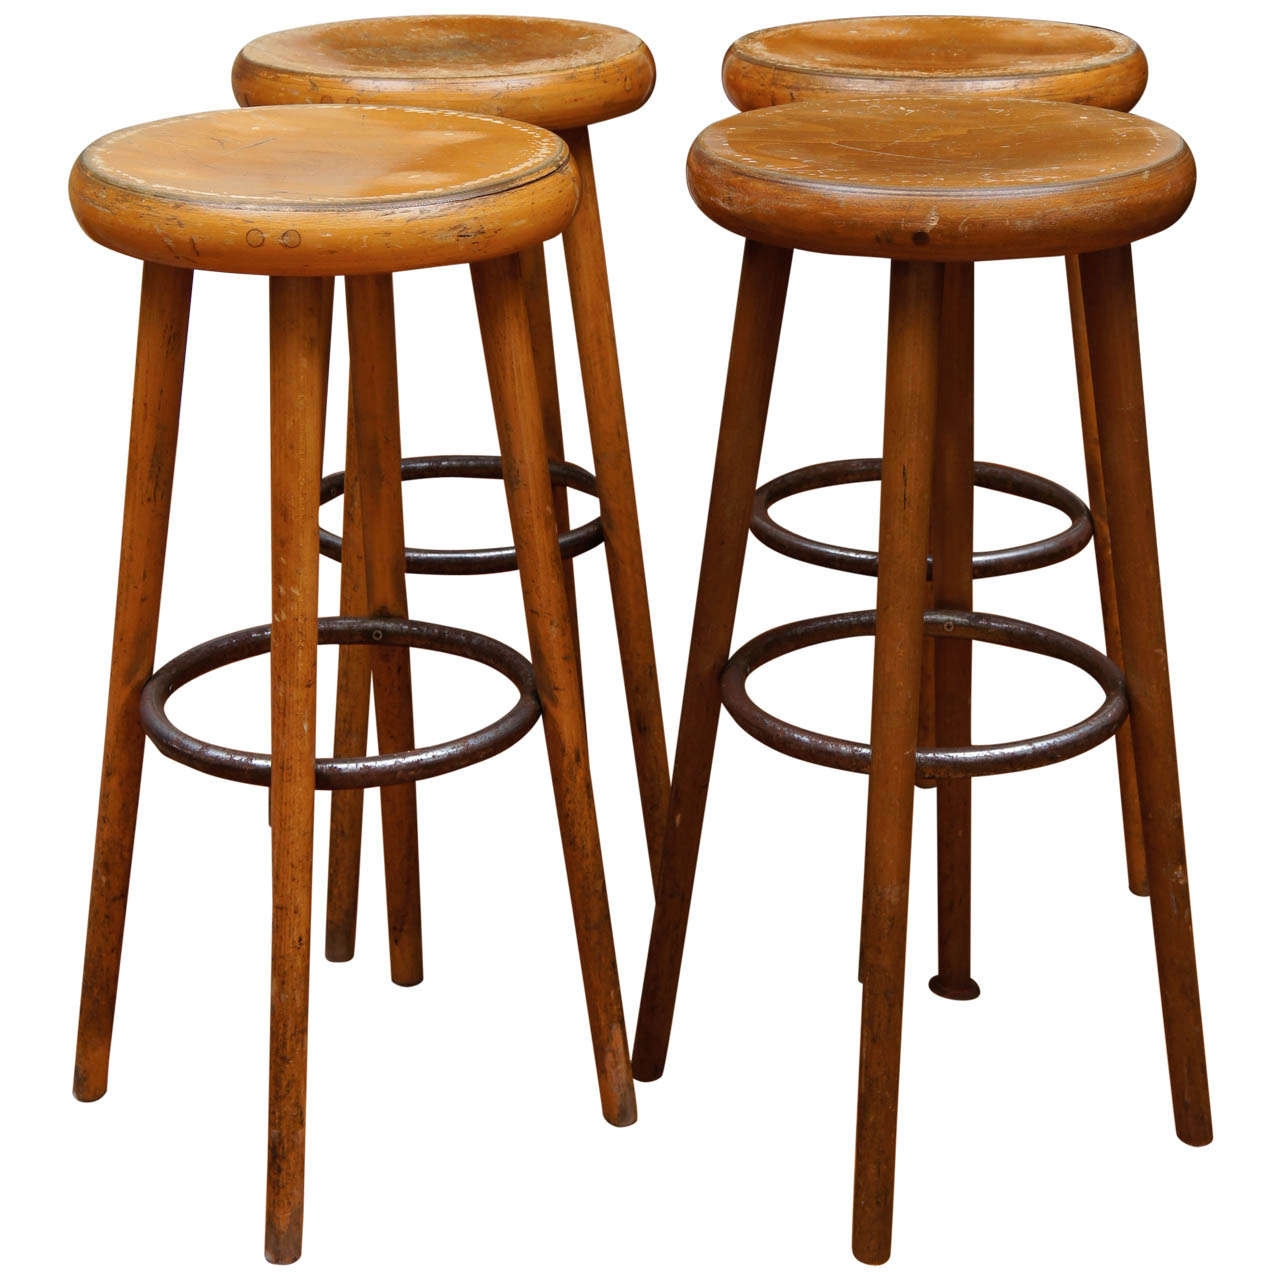 French Industrial Bar Stools At 1stdibs